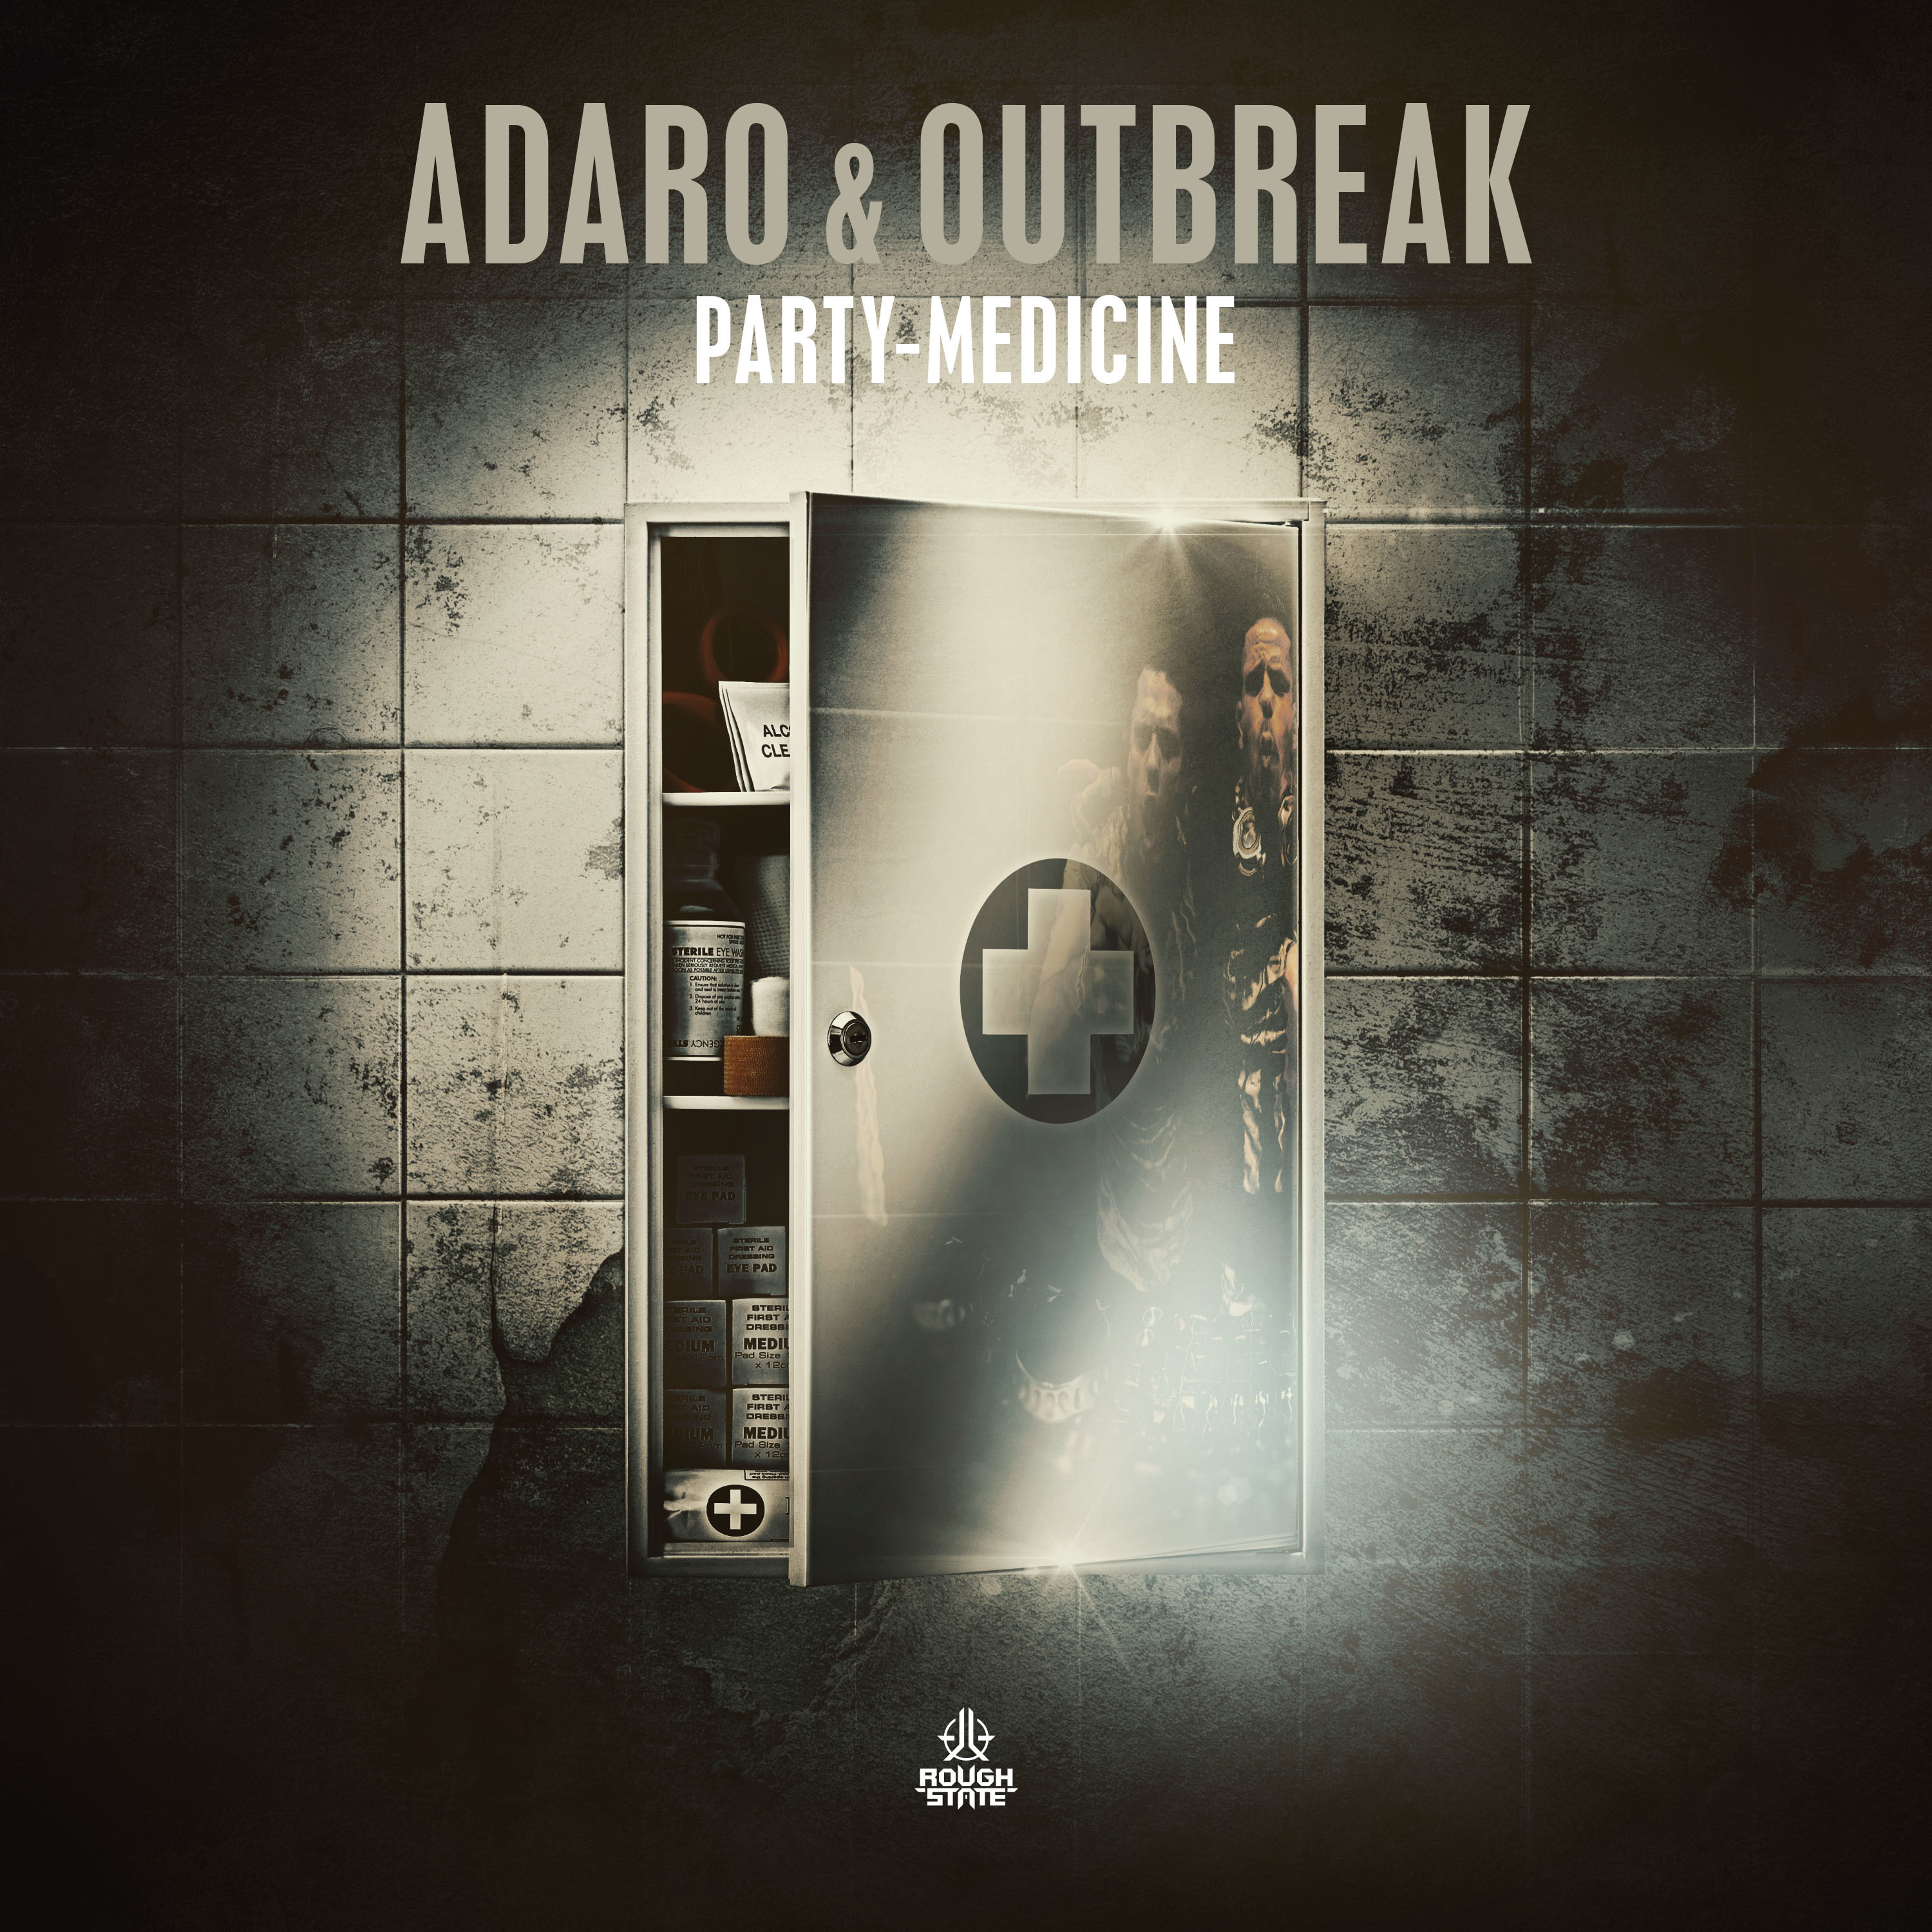 Adaro & Outbreak - Party Medicine [ROUGHSTATE MUSIC] ROUGH054